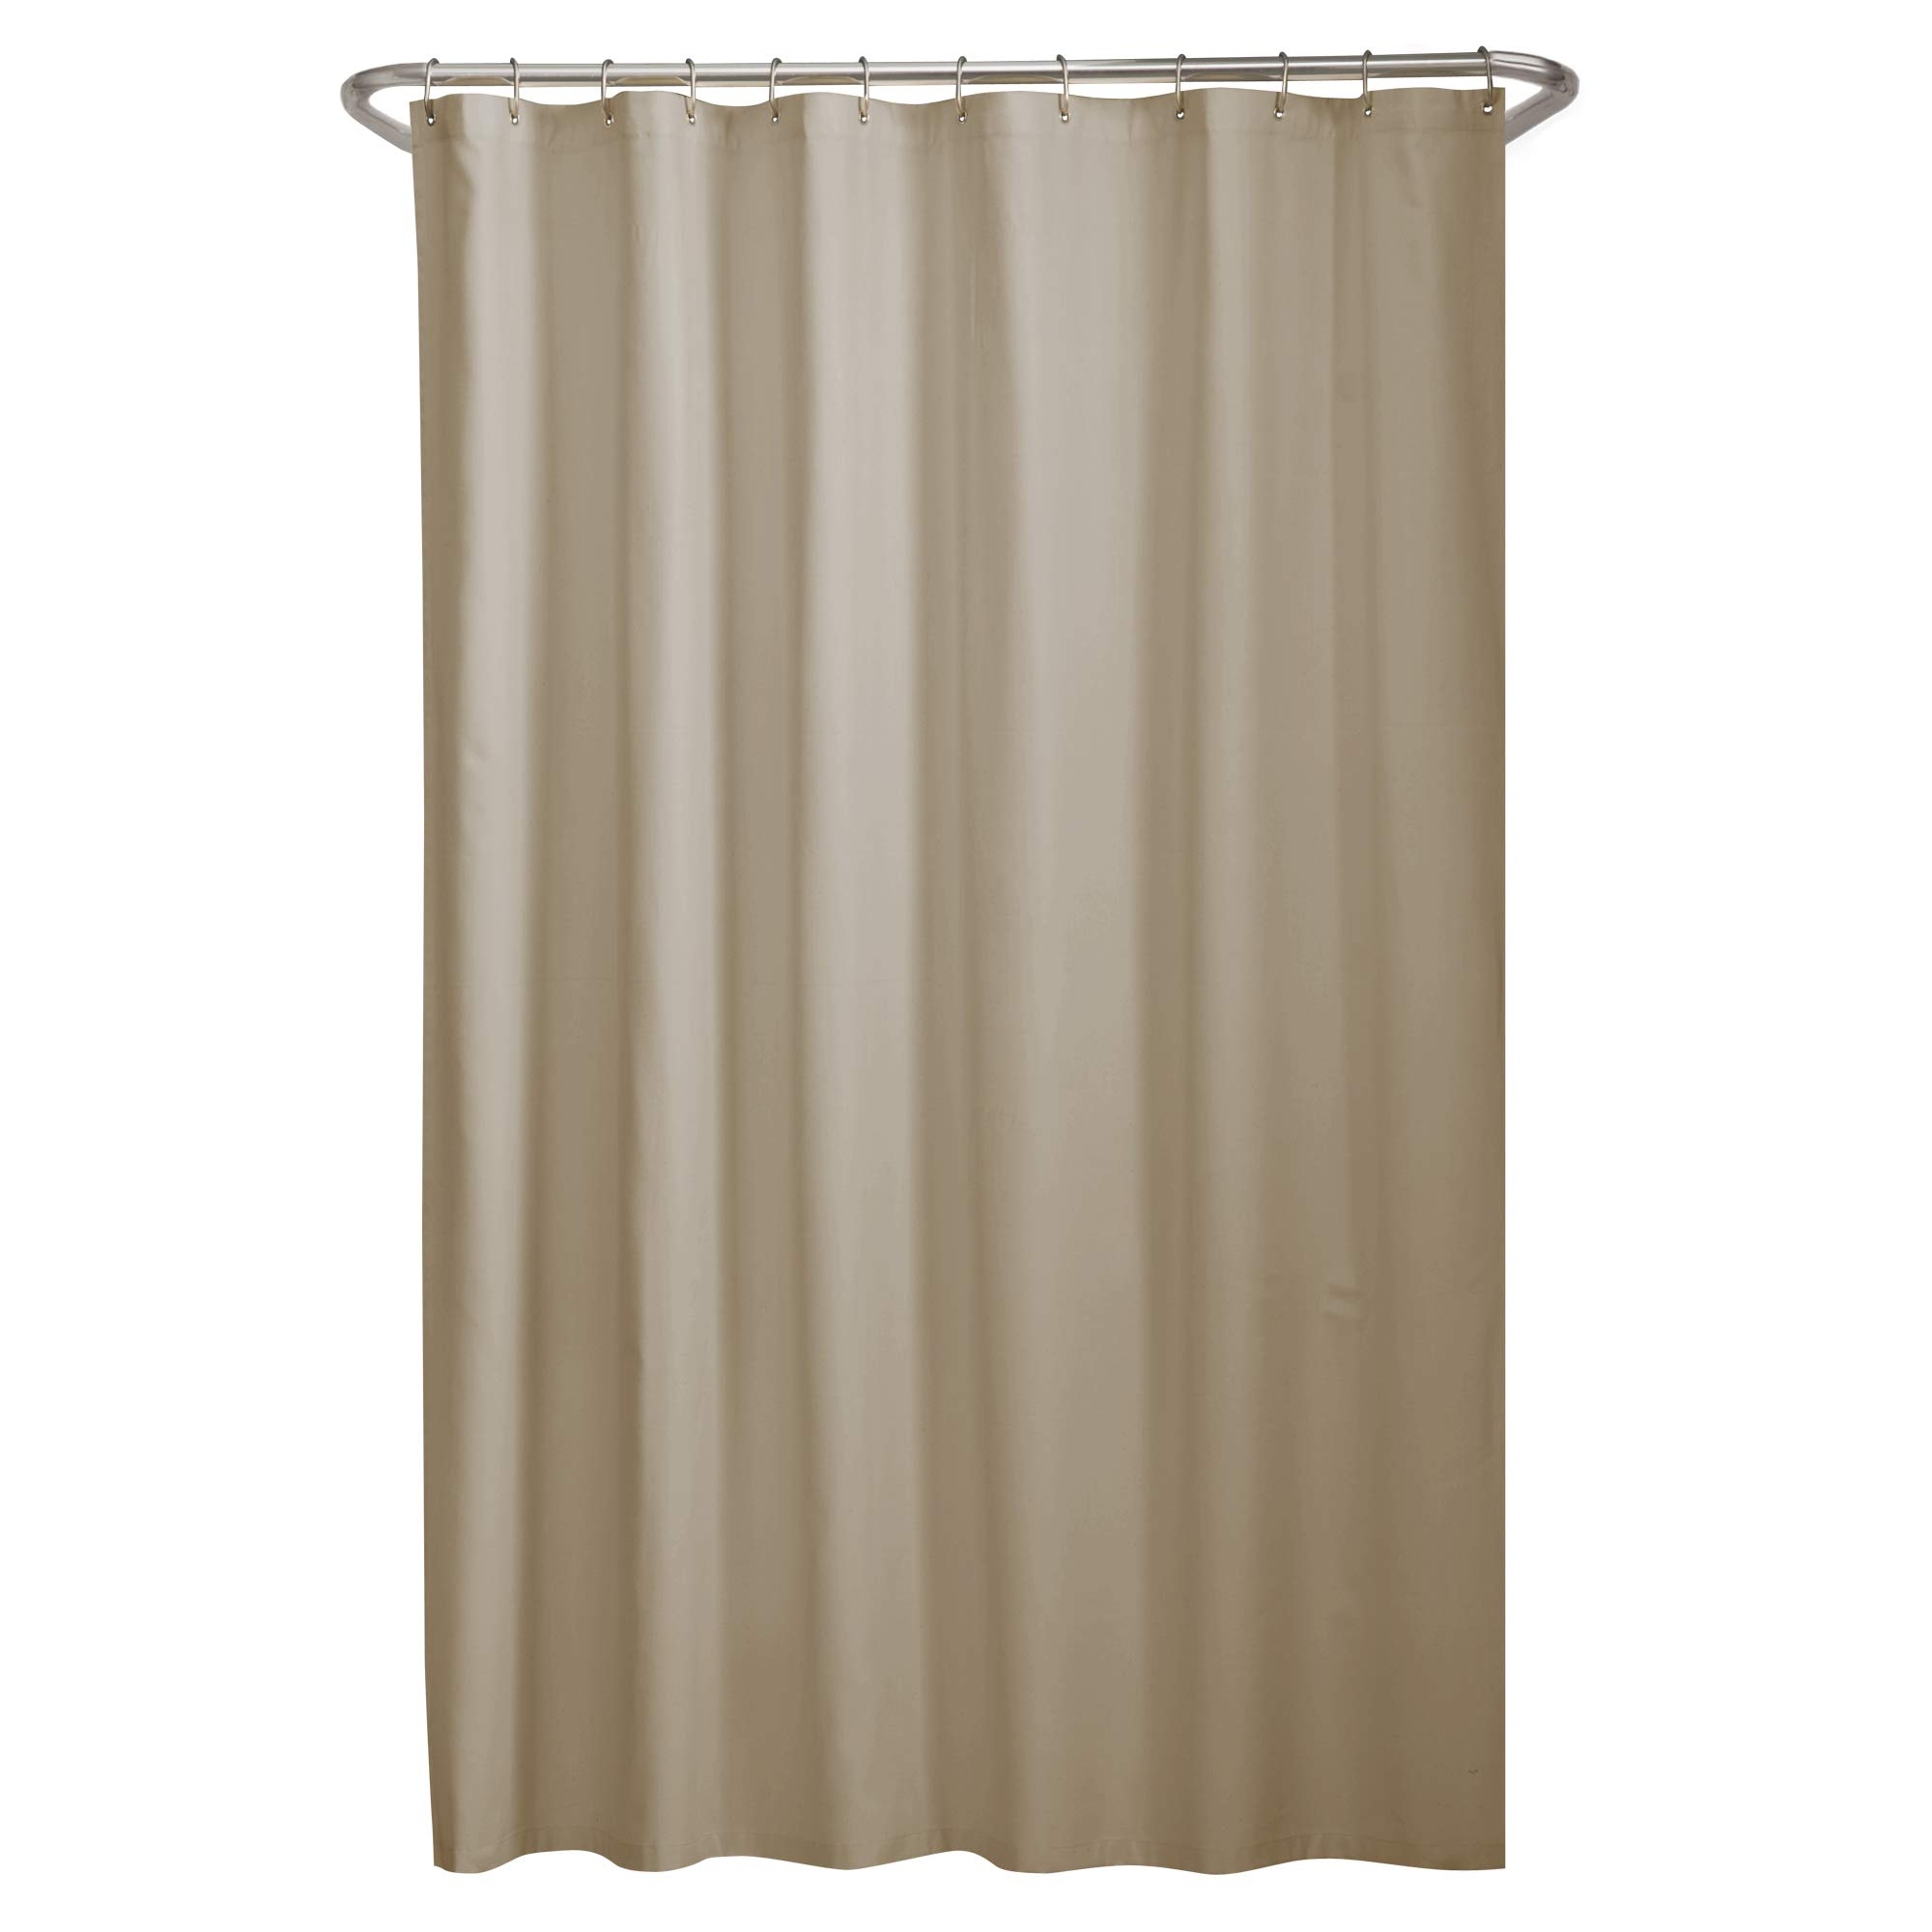 MAYTEX Soft Microfiber Water Repellent Fabric Shower Liner or Curtain, Linen, Beige